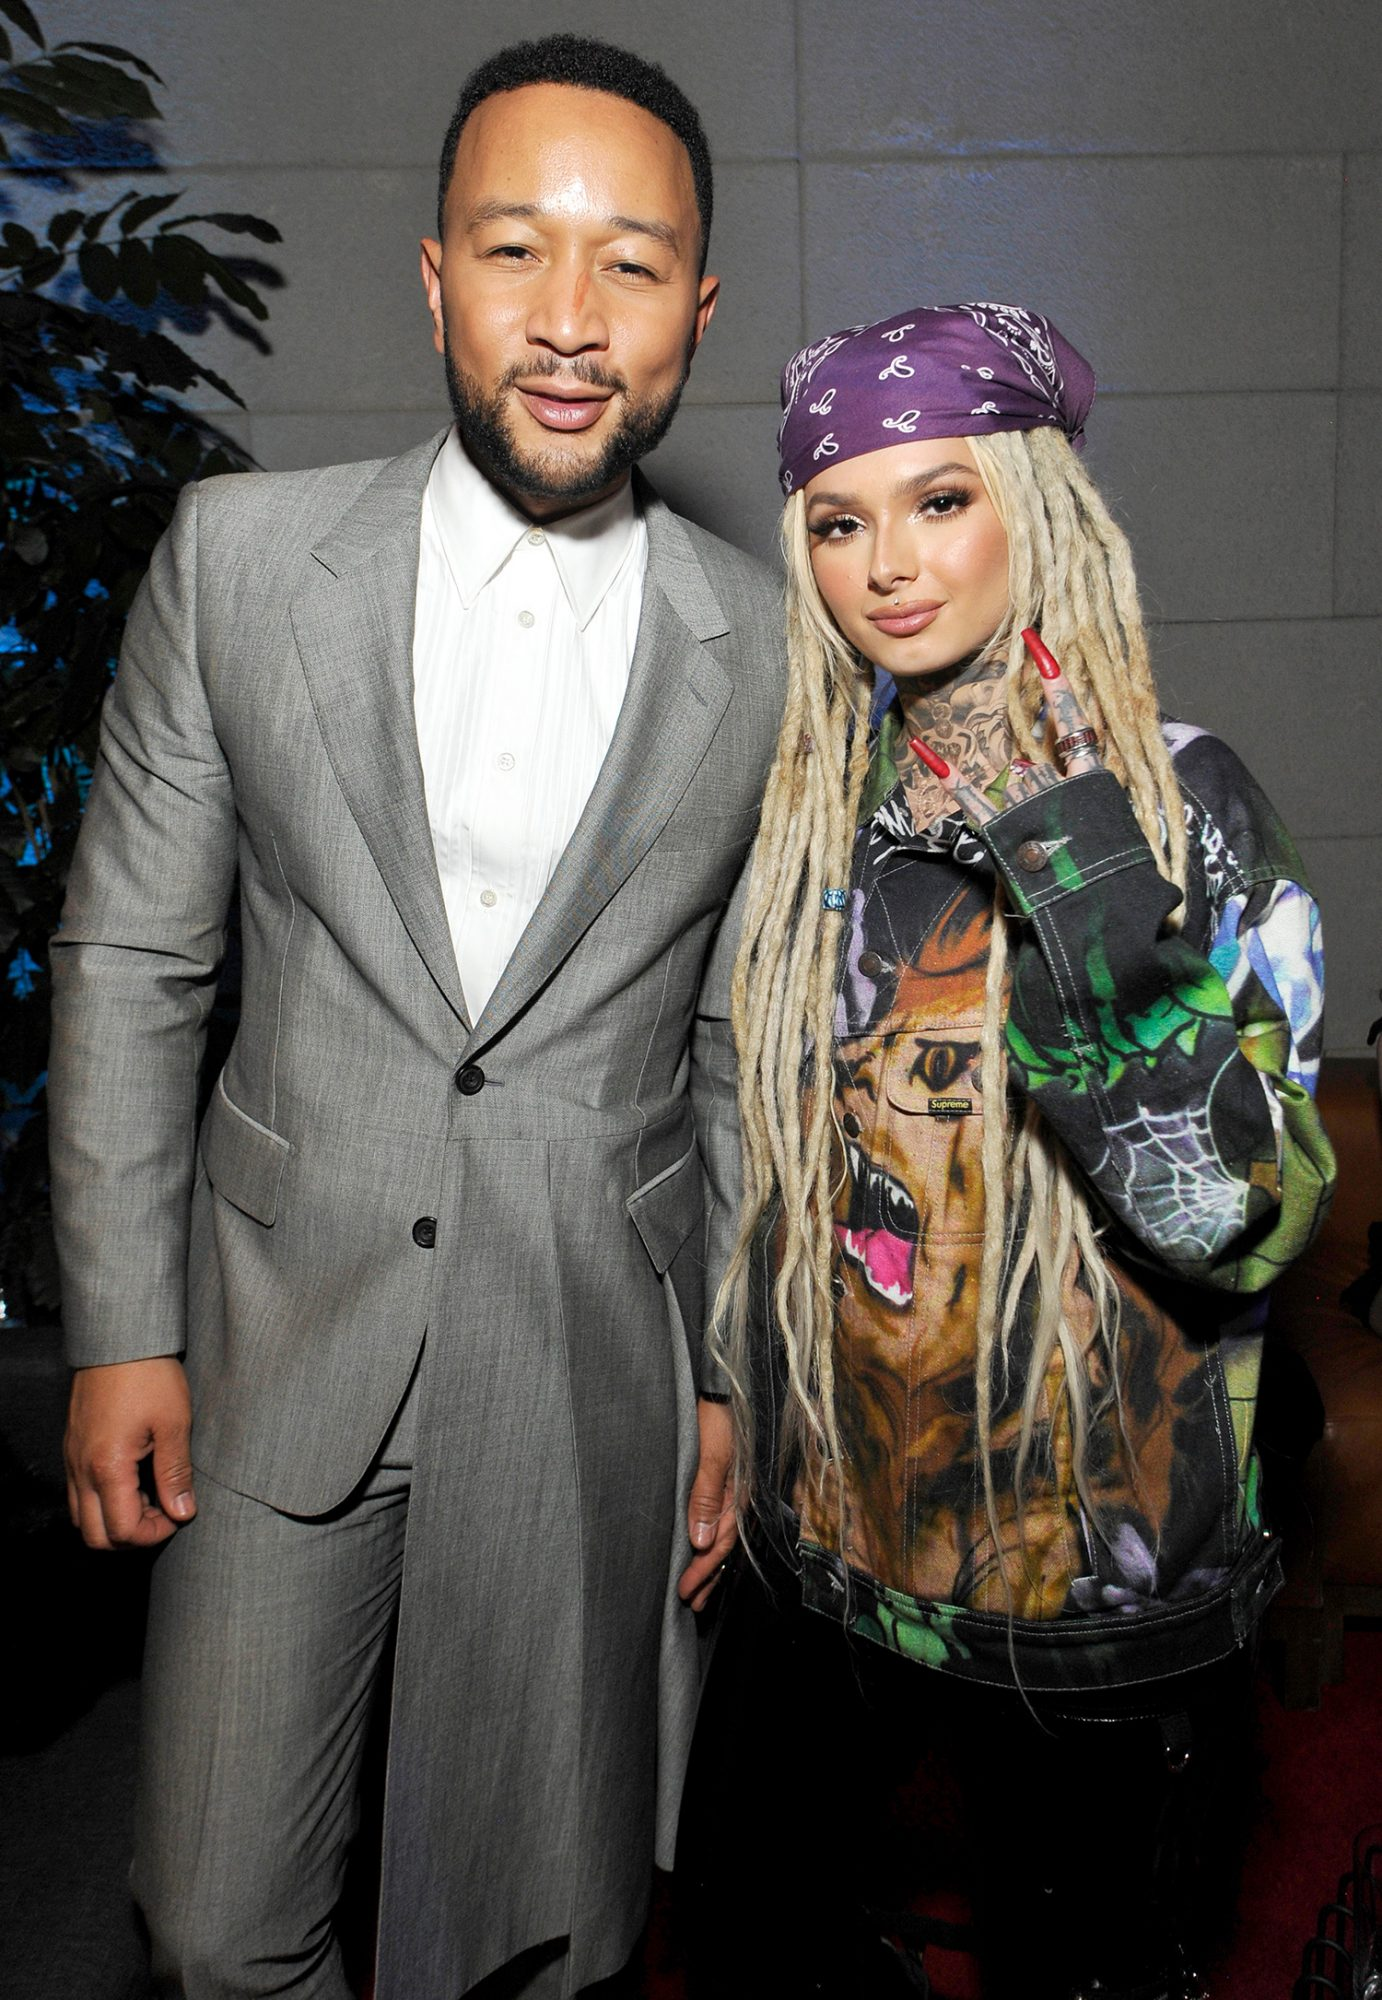 John Legend and Zhavia